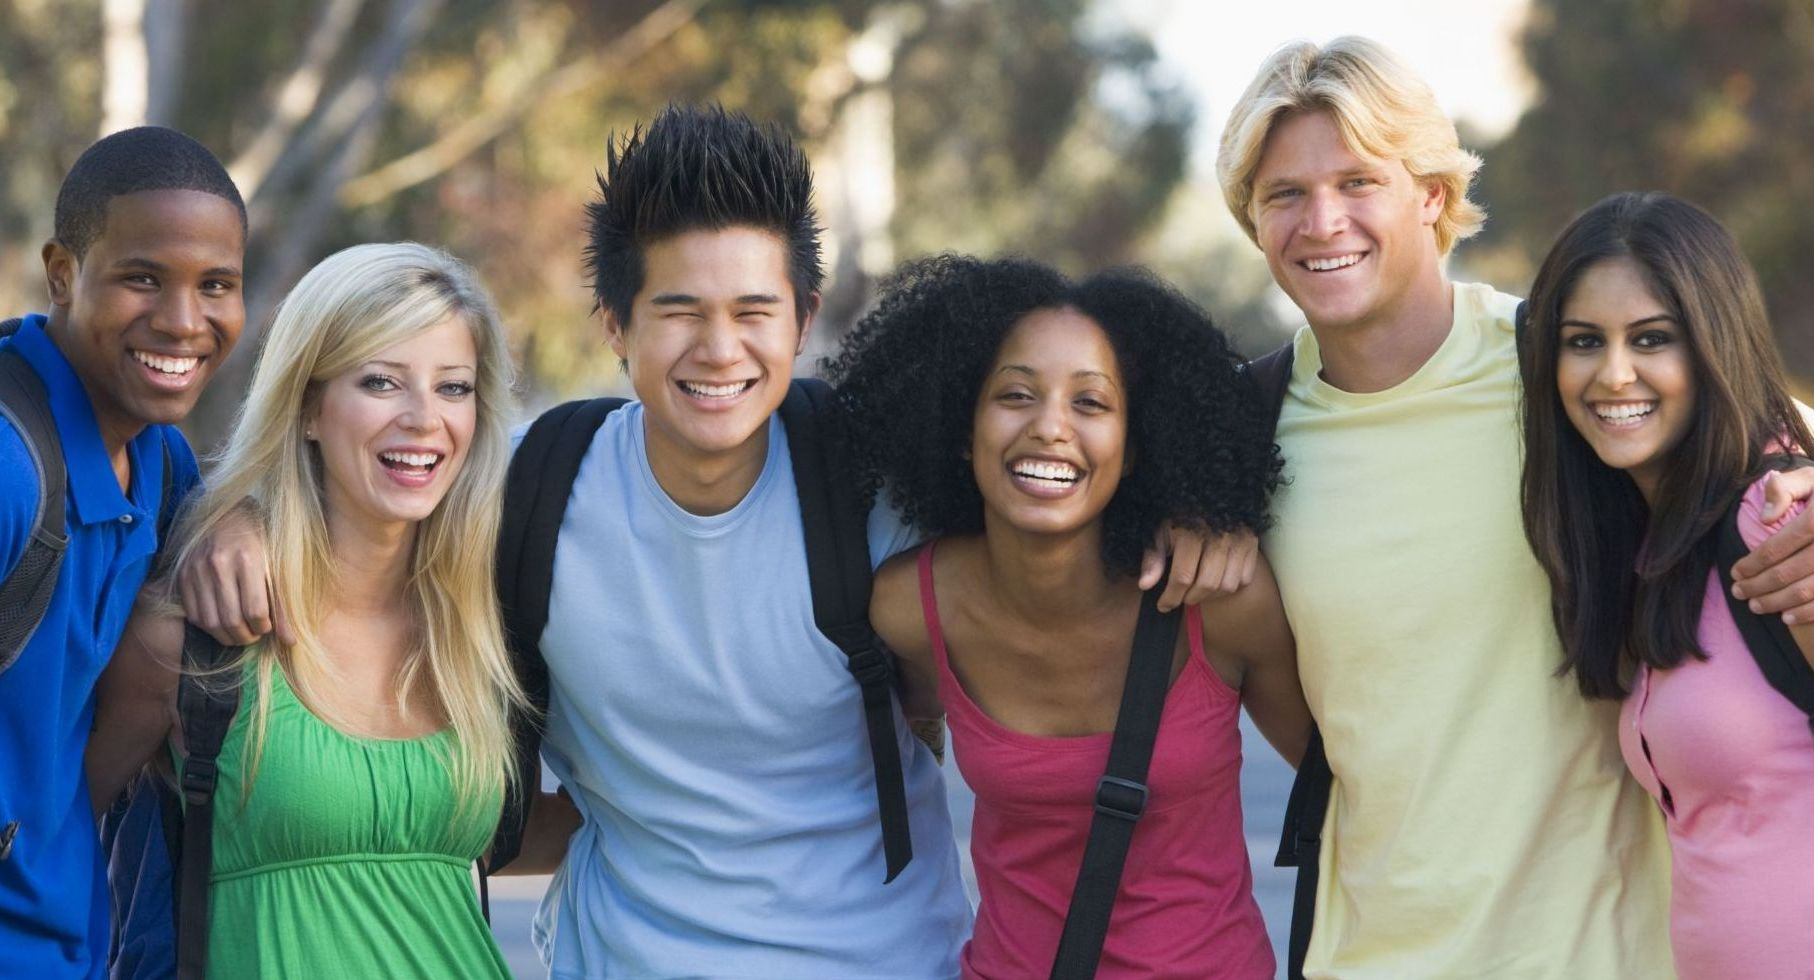 college study groups - HD1600×864